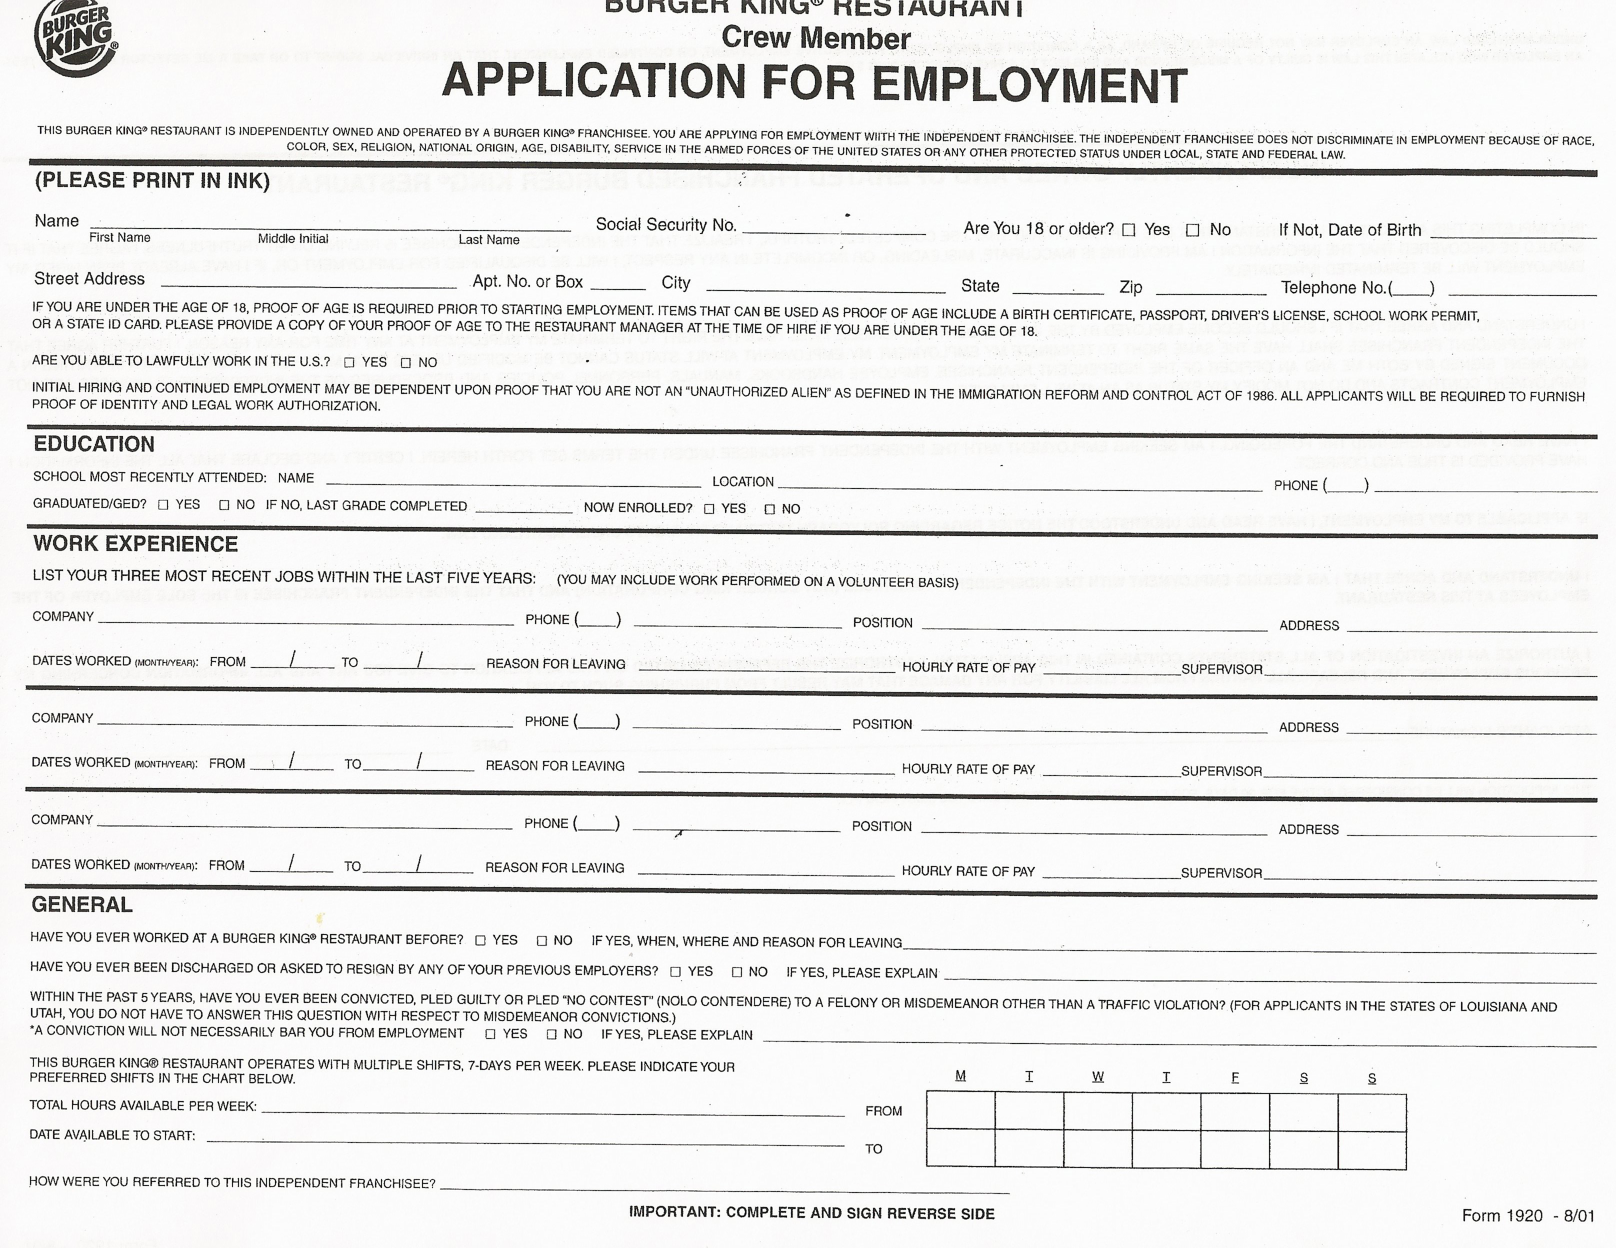 job application forms to print | printable job application forms